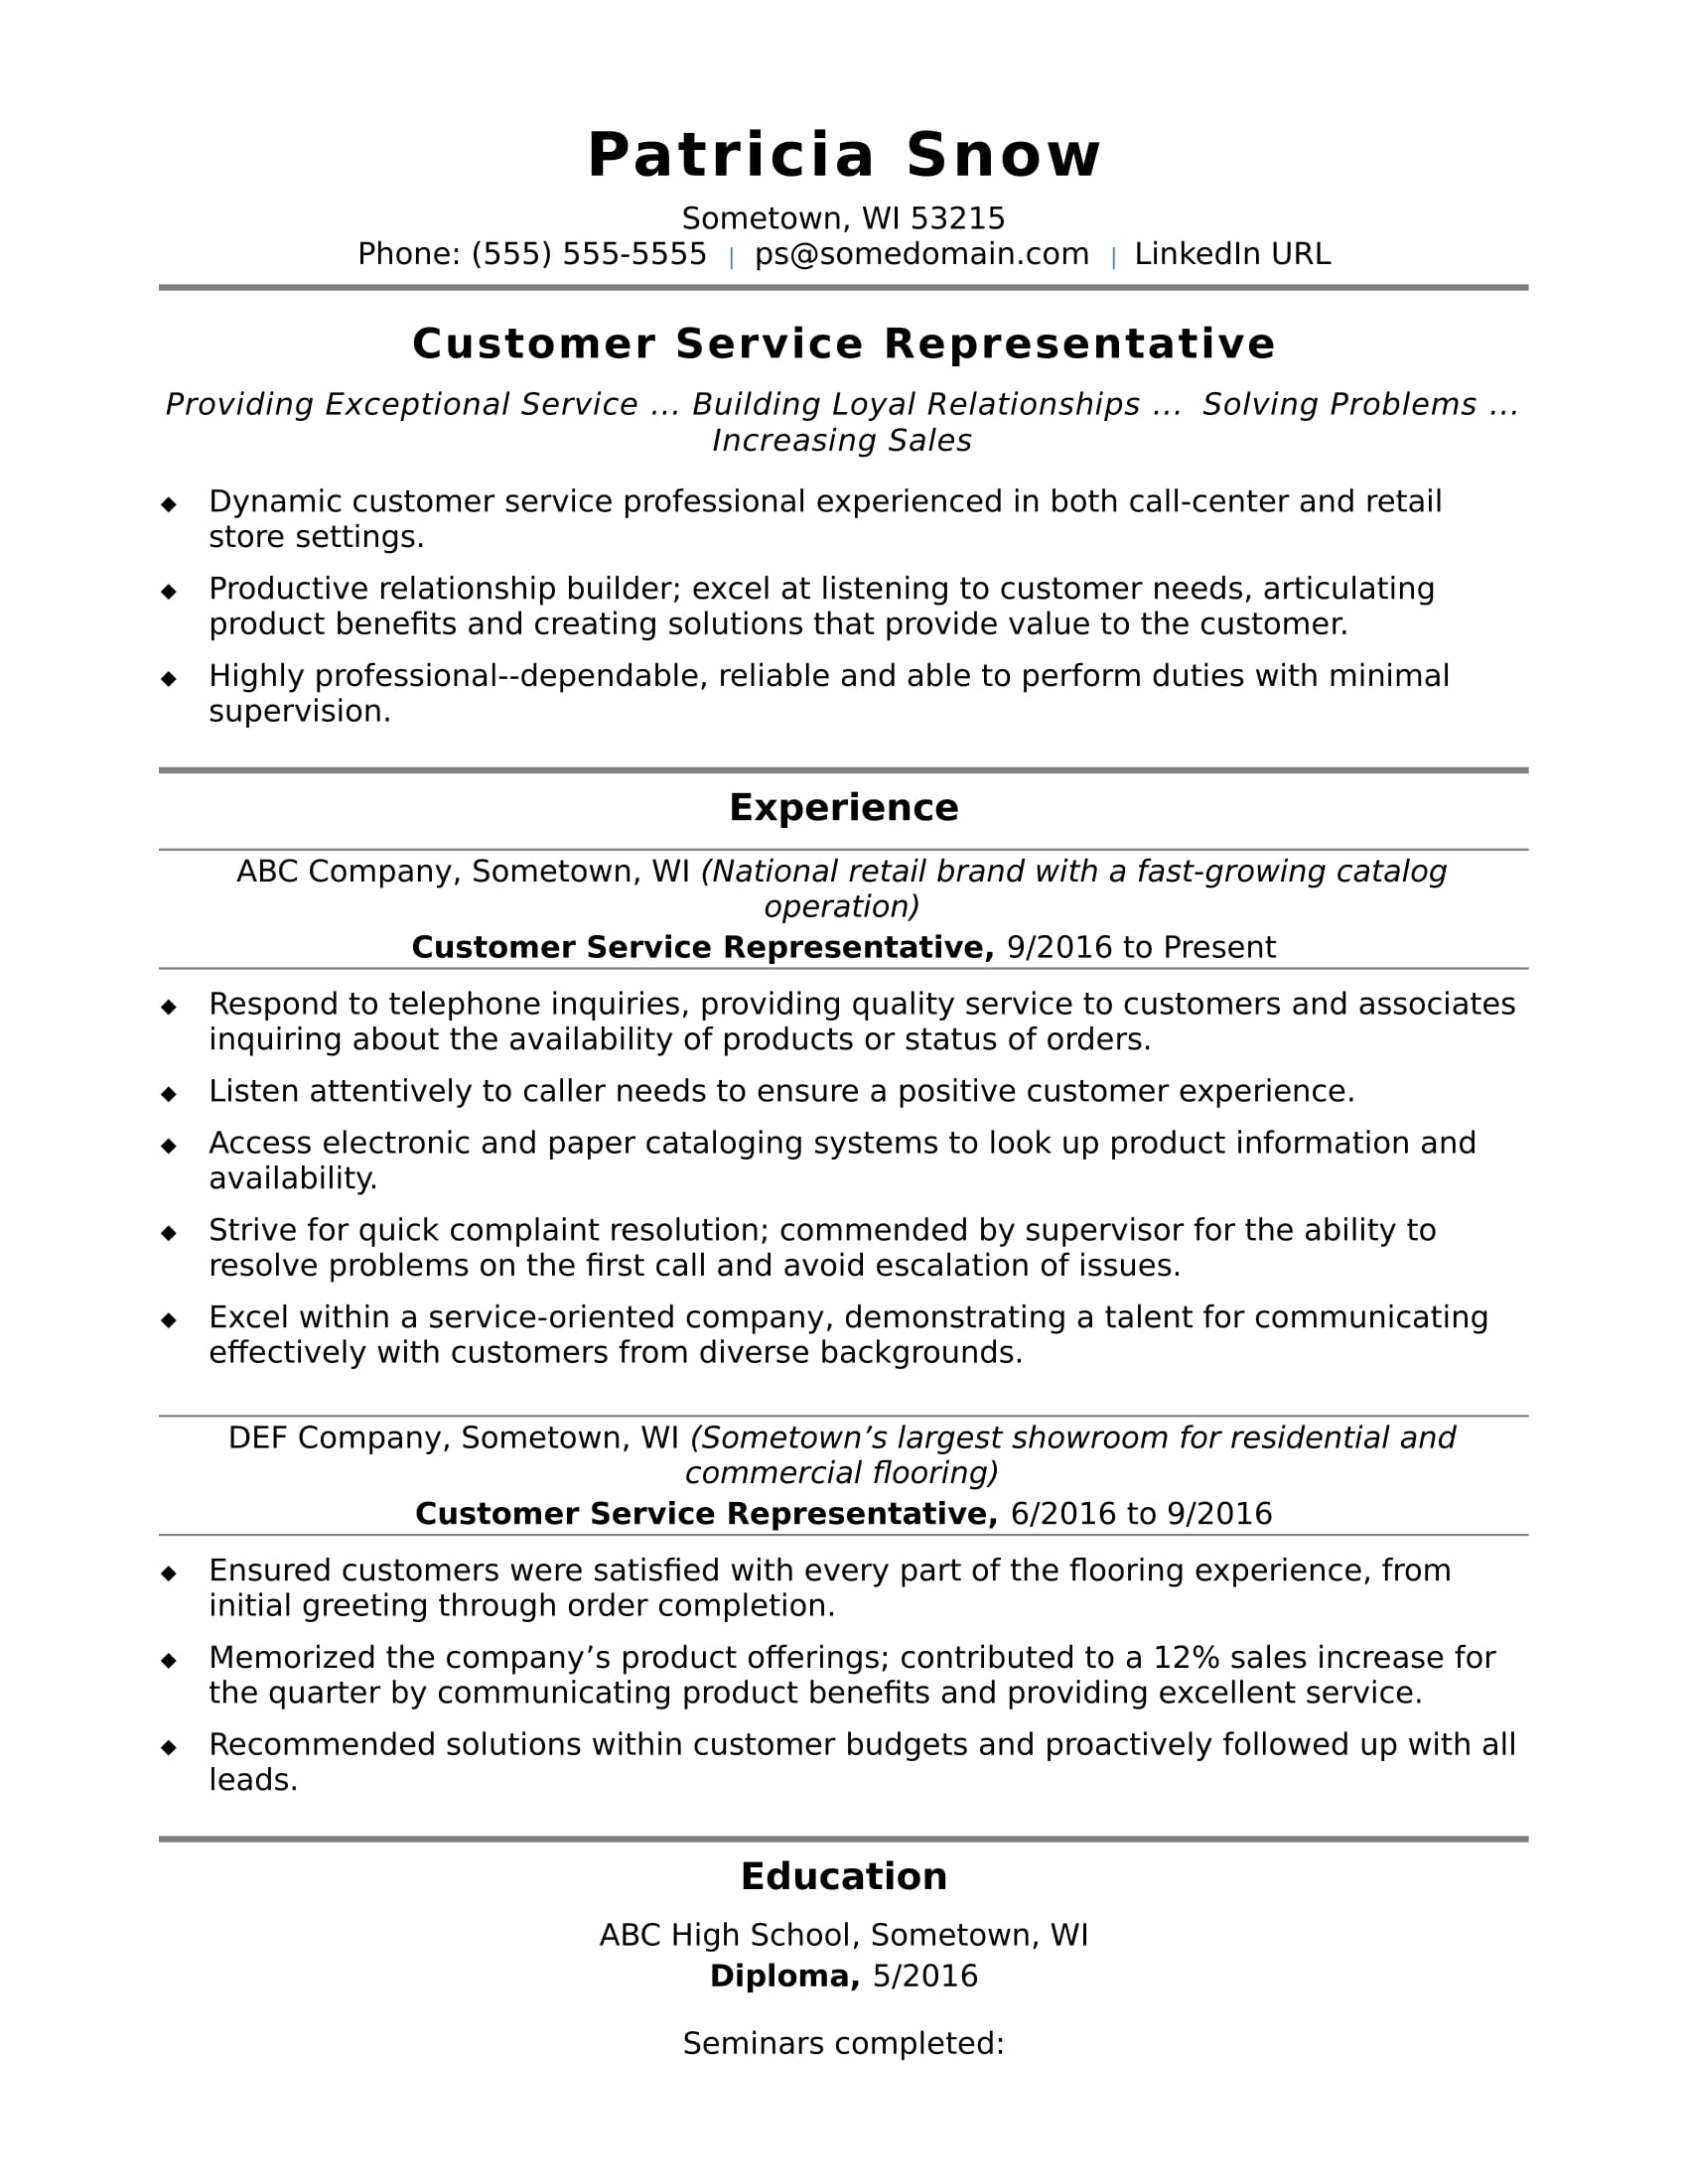 customer service representative resume sample monster specialist entry level law school Resume Customer Service Specialist Resume Sample